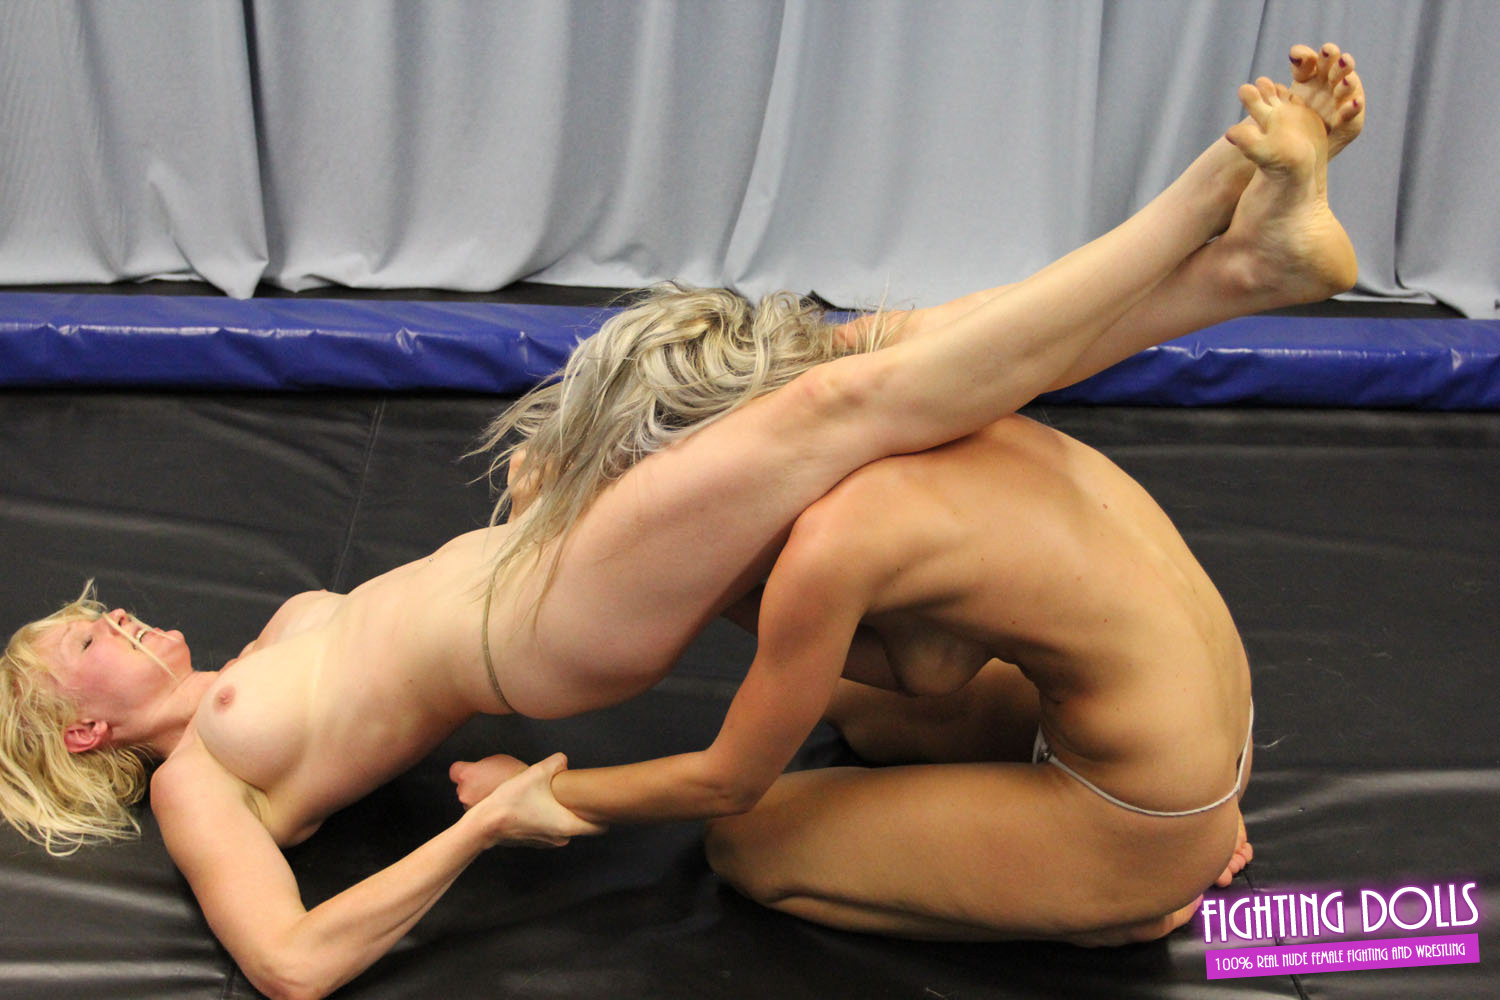 In movie nude wrestling advise you